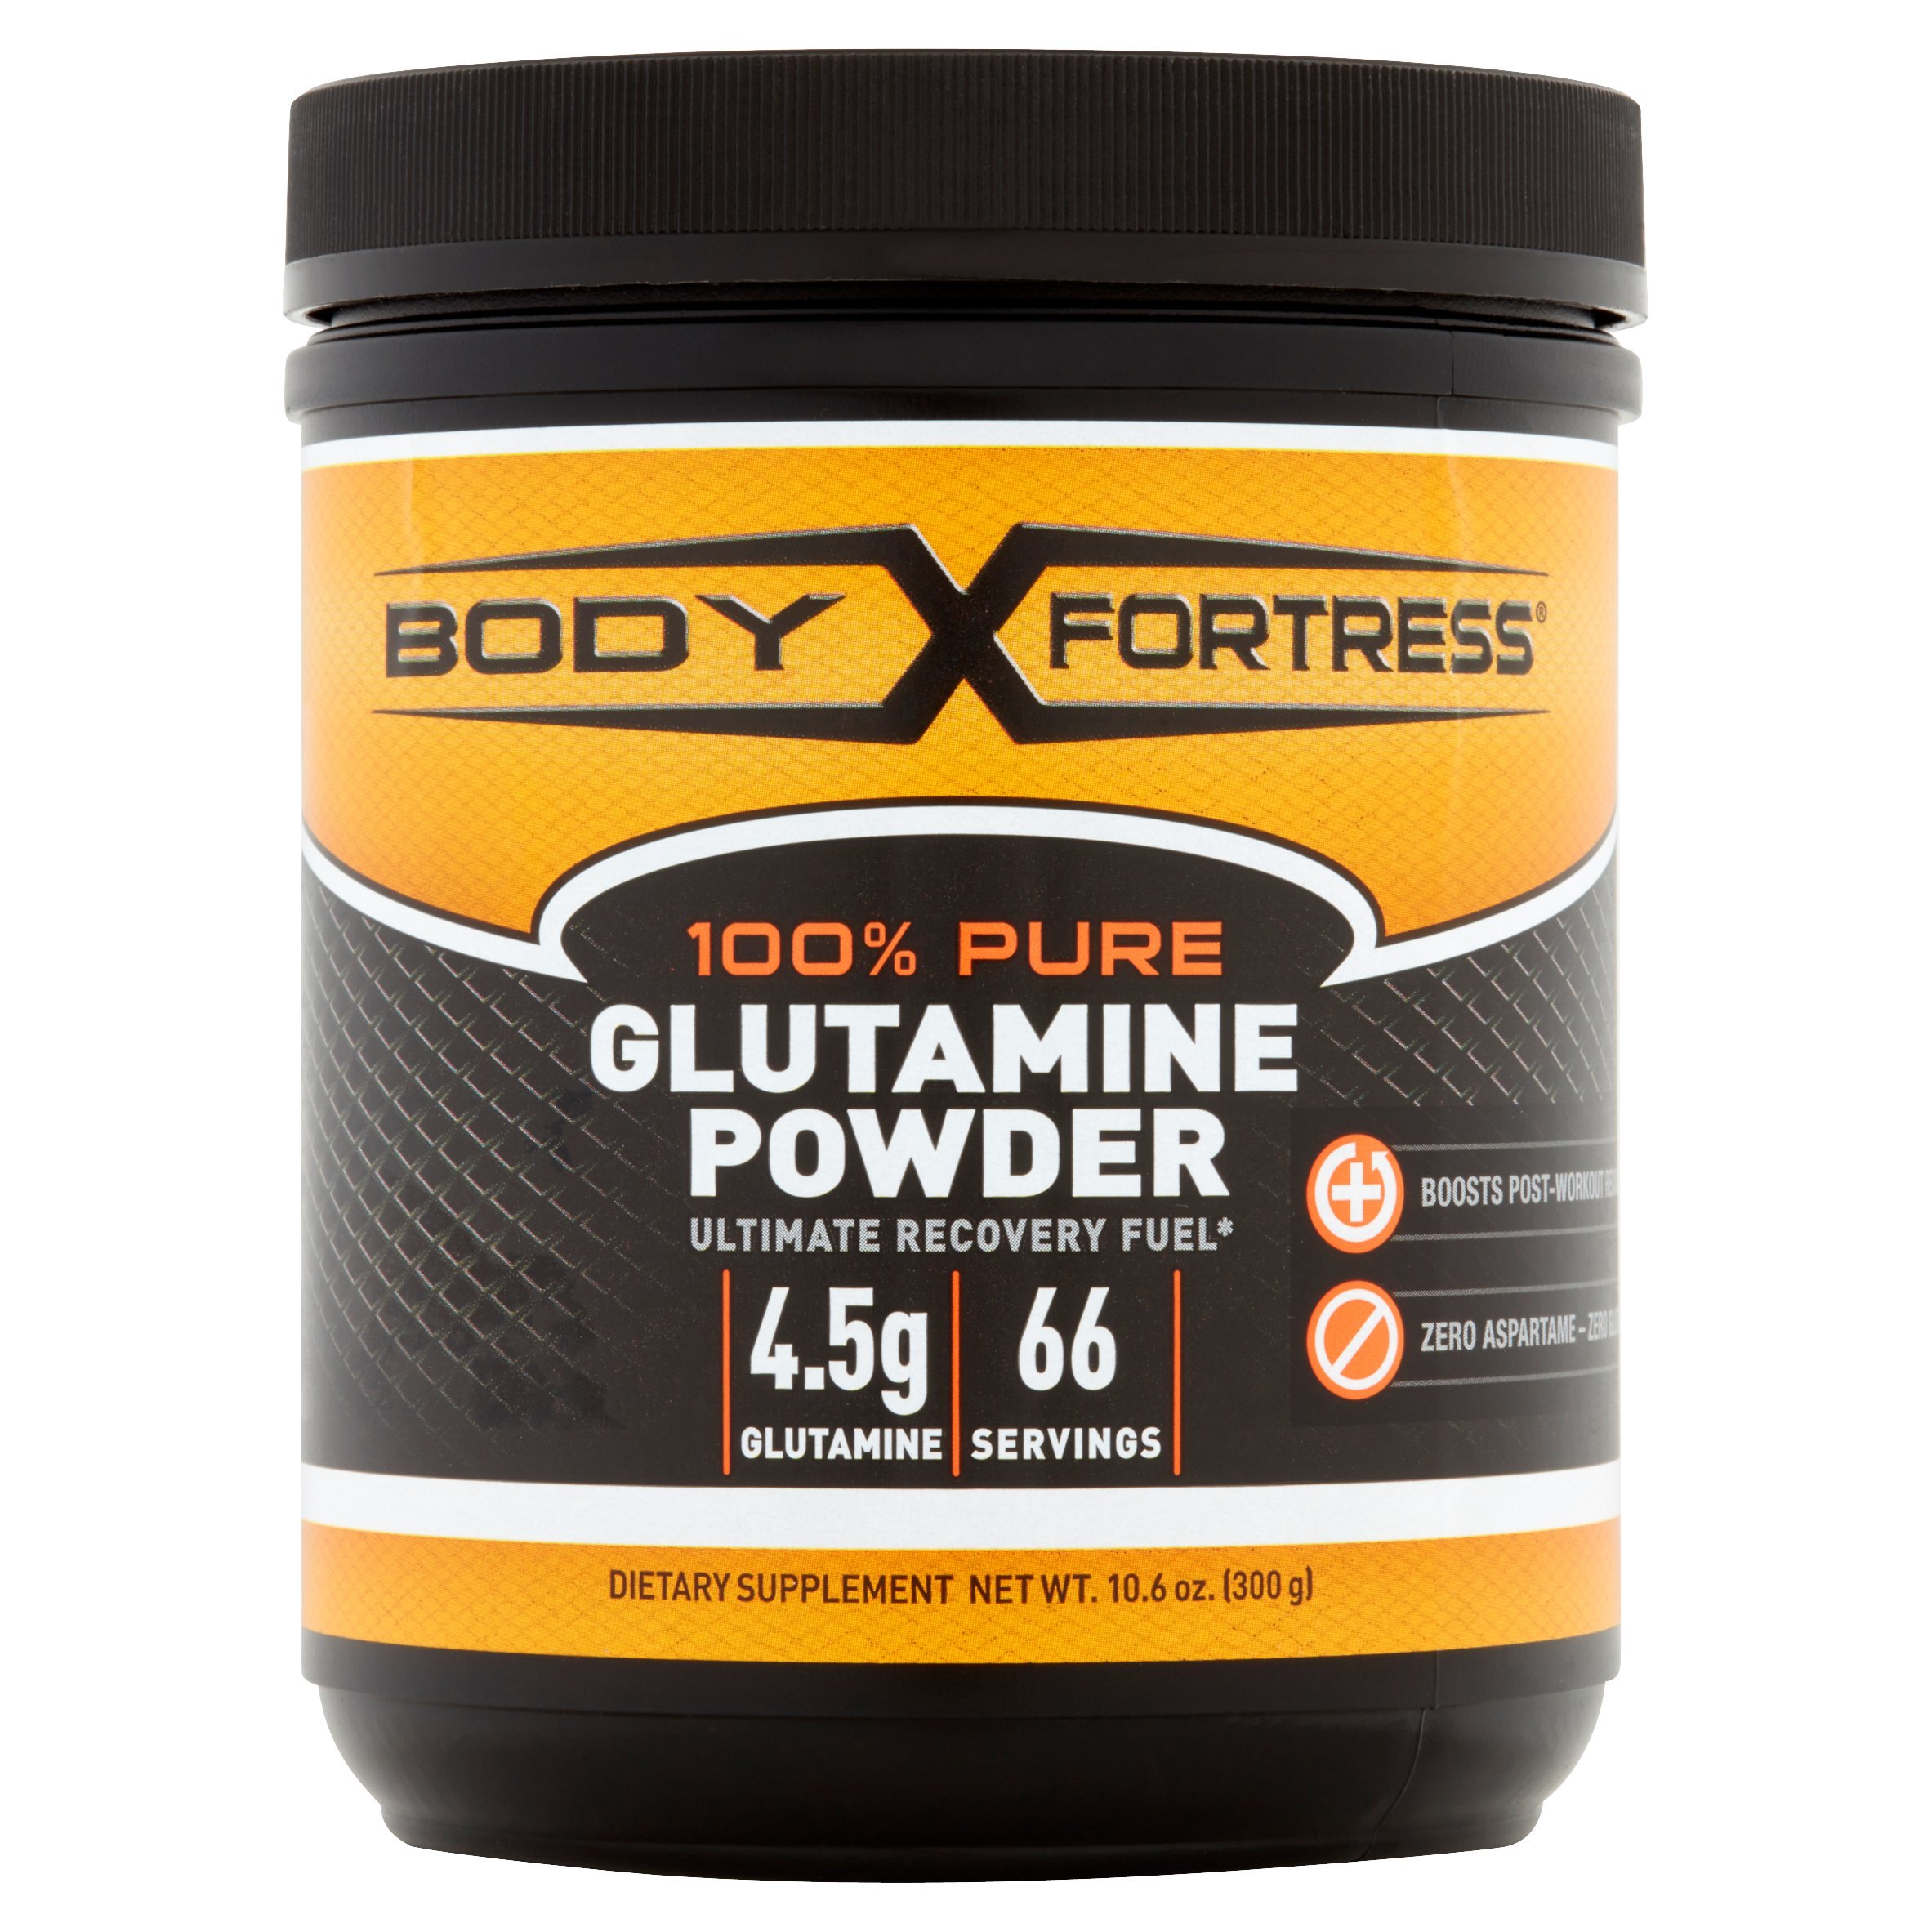 Body Fortress 100% Pure Glutamine Powder, 66 Servings